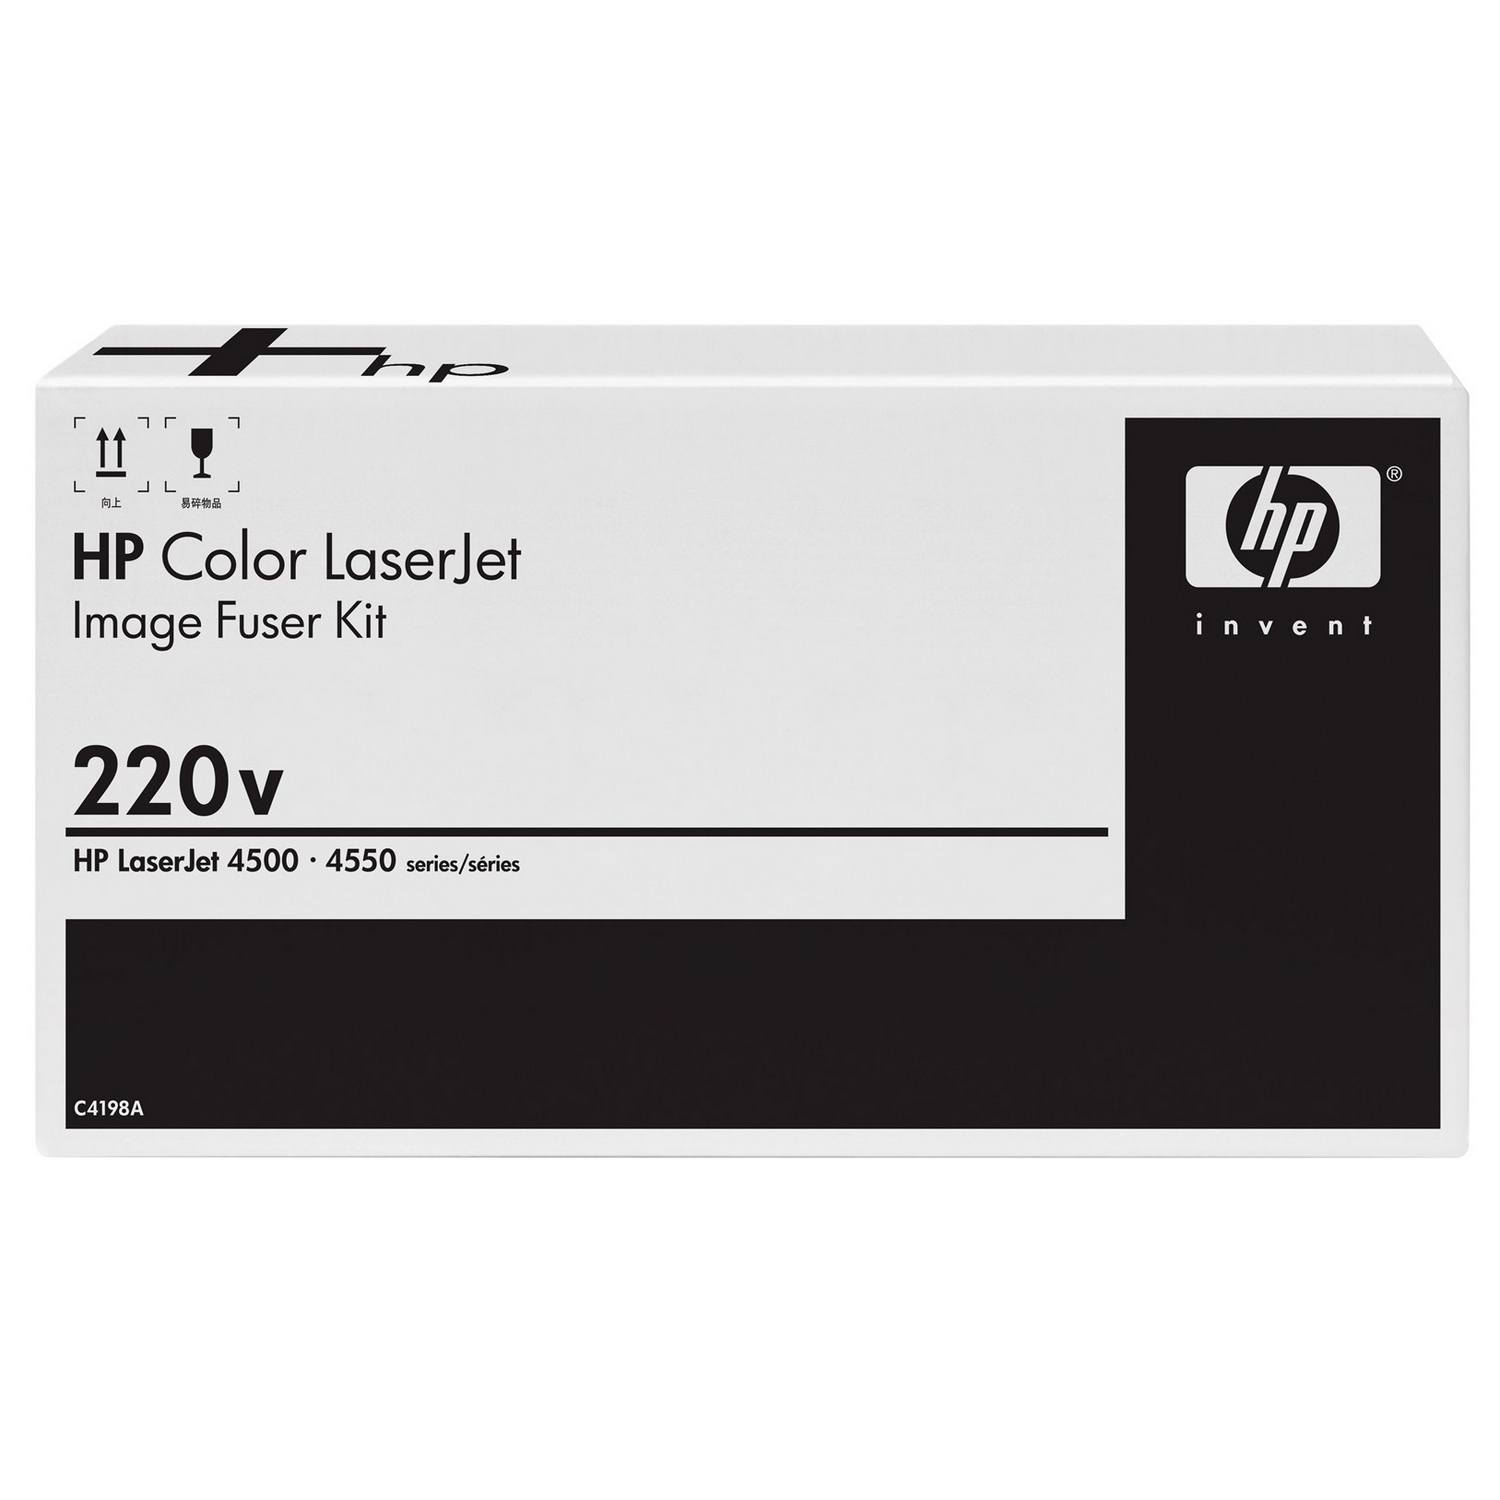 Ink and volt coupon code